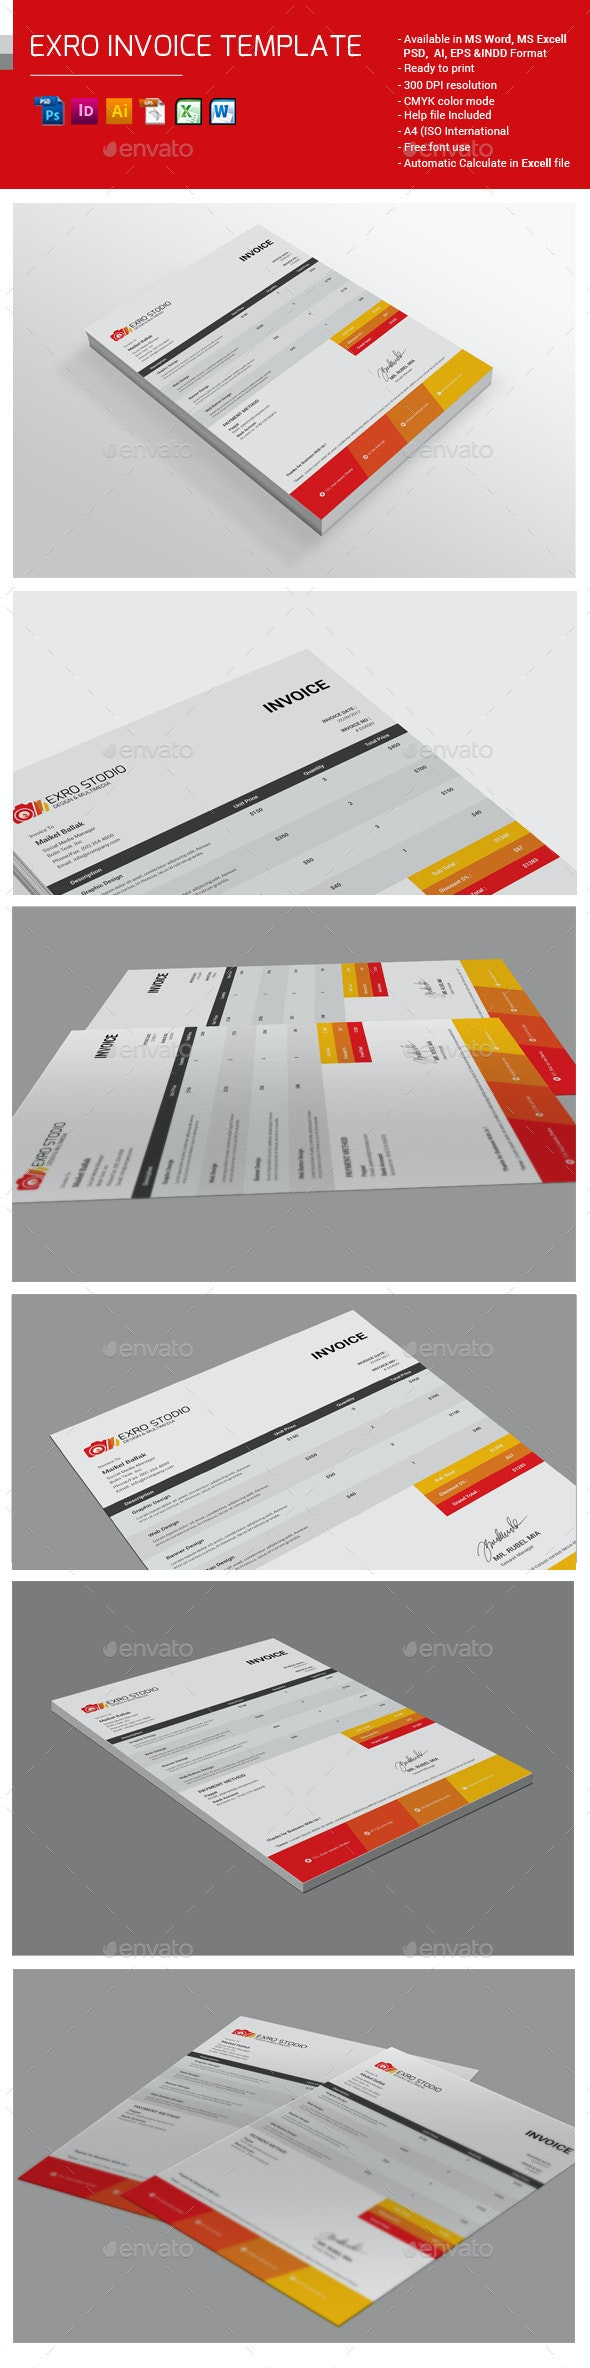 Exro Invoice Template - Proposals & Invoices Stationery